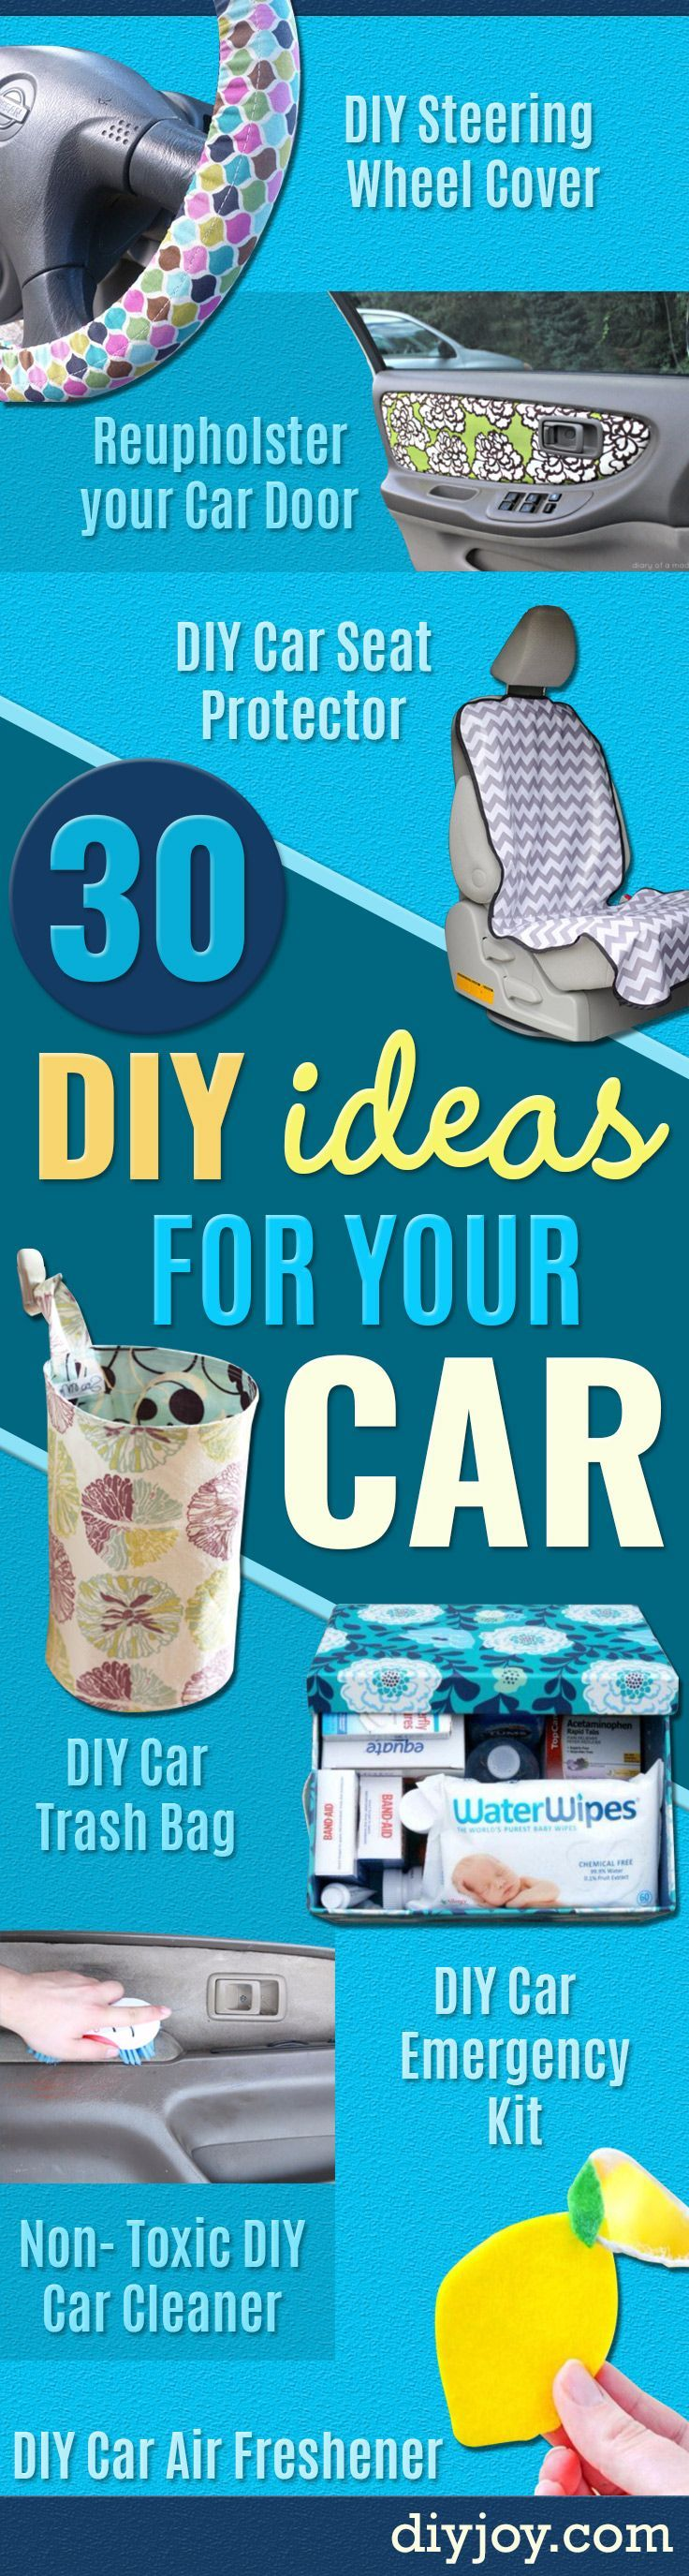 Diy Ideas Make For The Car Truck Cleaning Hacks Organization